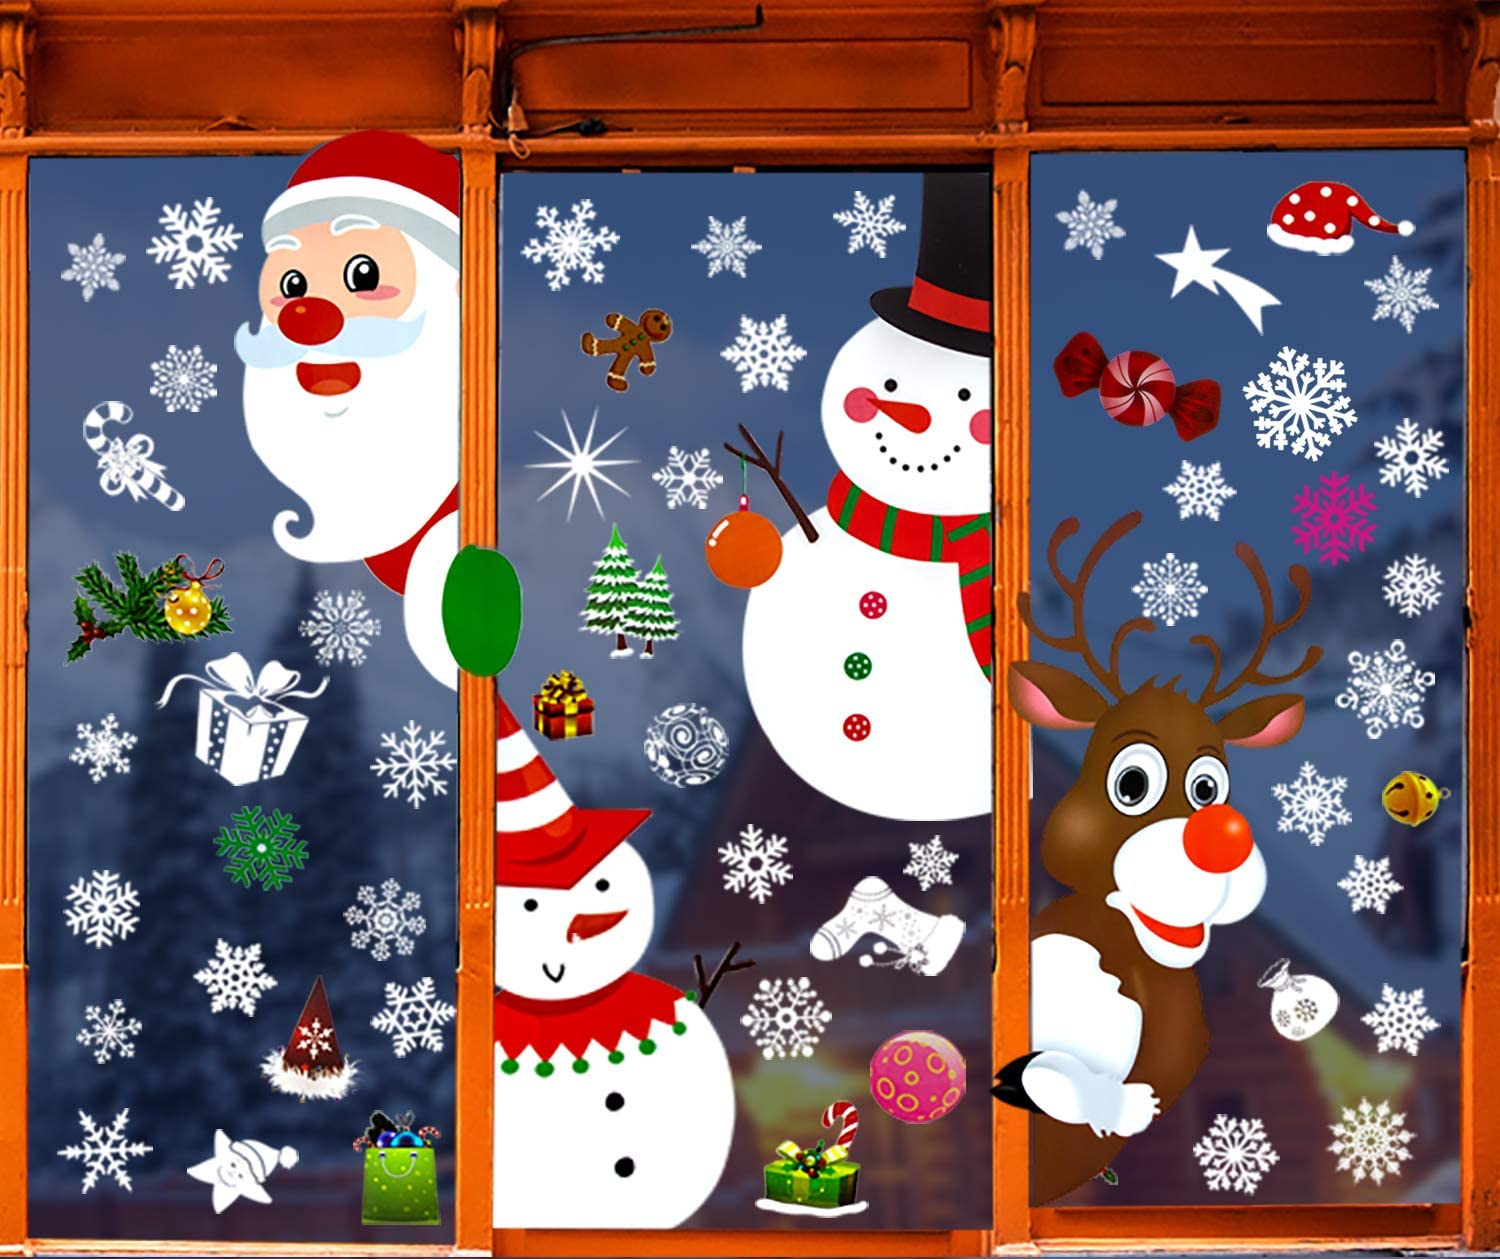 235 Piece Christmas Window Snowflake Cling Decals Stickers Decorations